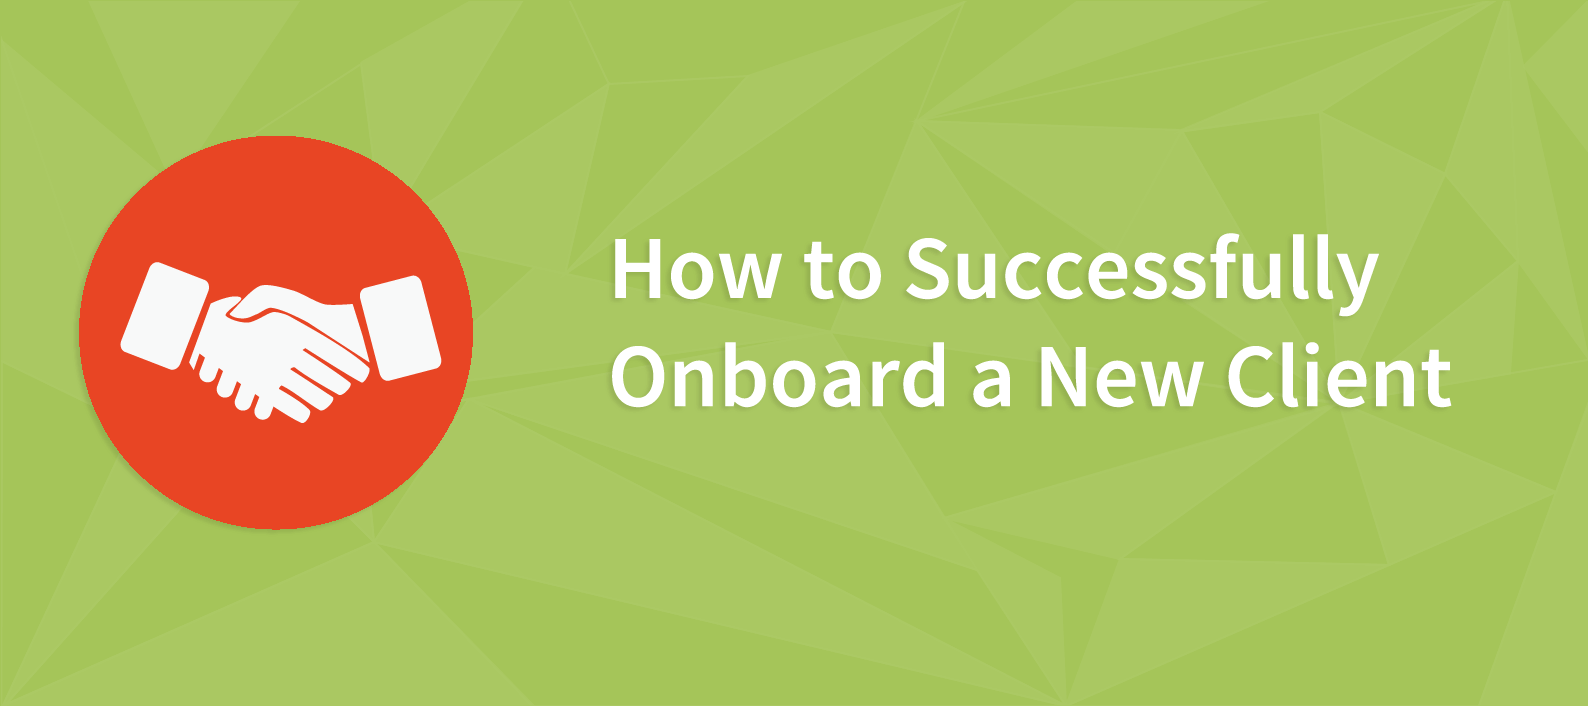 https://www.brightlocal.com/2017/02/01/4-ways-to-successfully-onboard-a-new-client/